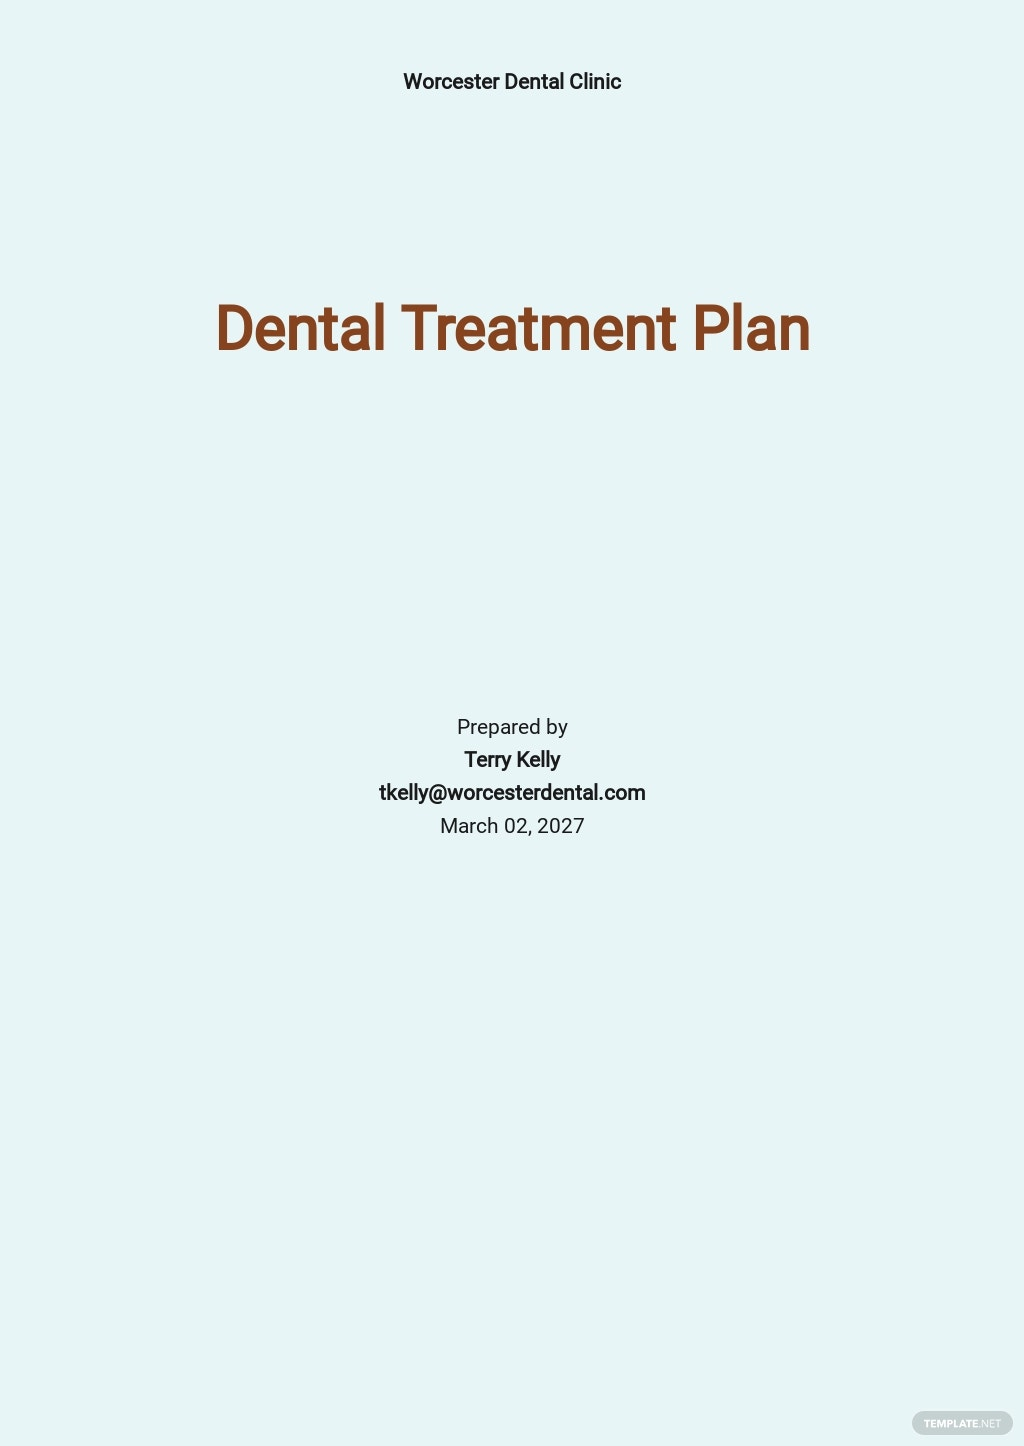 Dental Treatment Plan Template